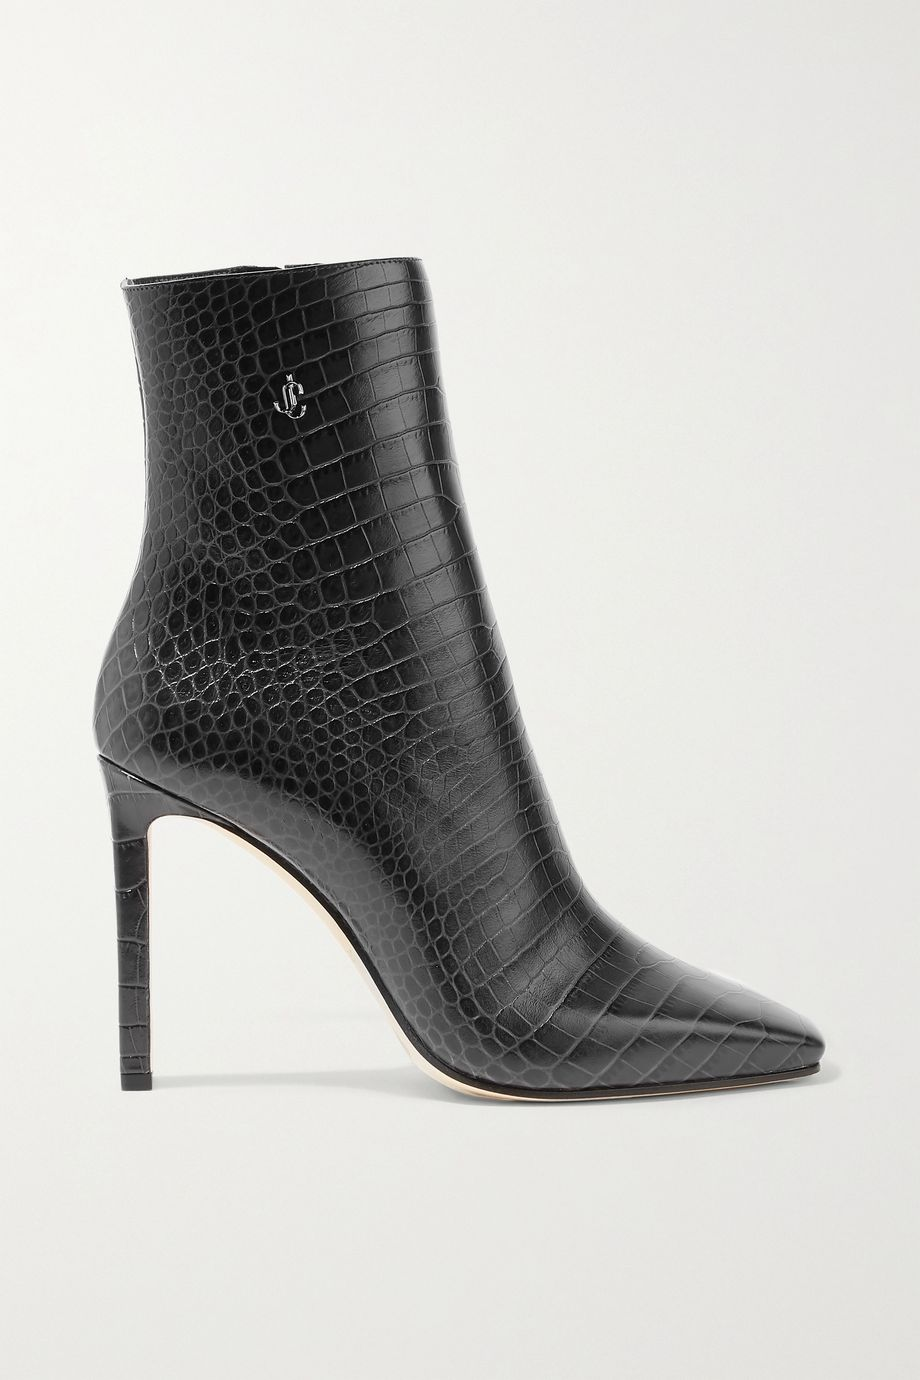 Jimmy Choo Minori 100 embellished croc-effect leather ankle boots